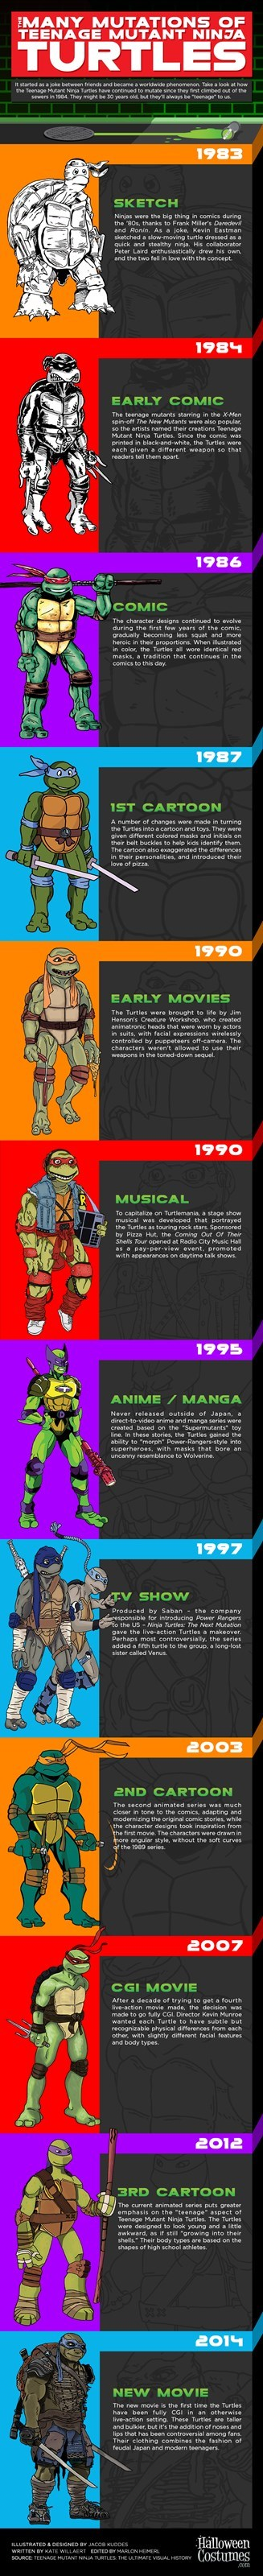 The History of Turtle Power